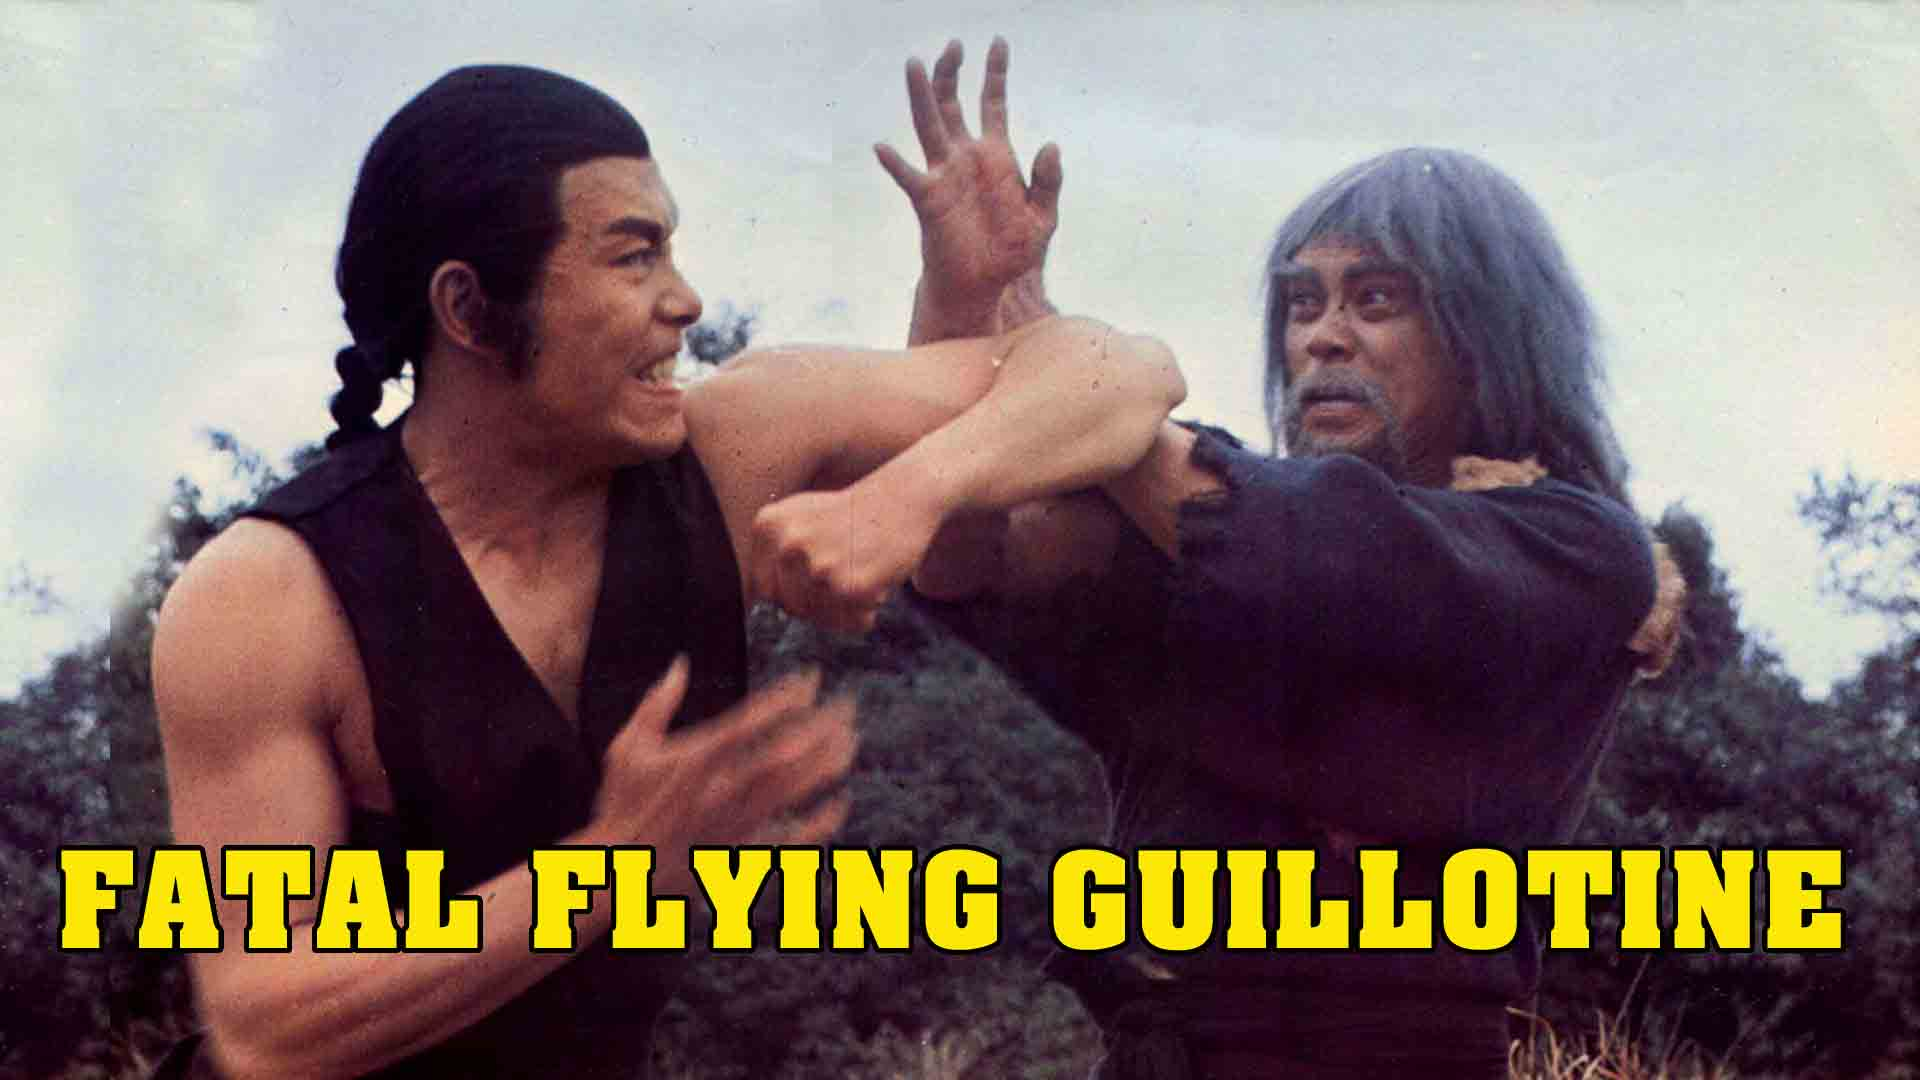 Fatal Flying Guillotine